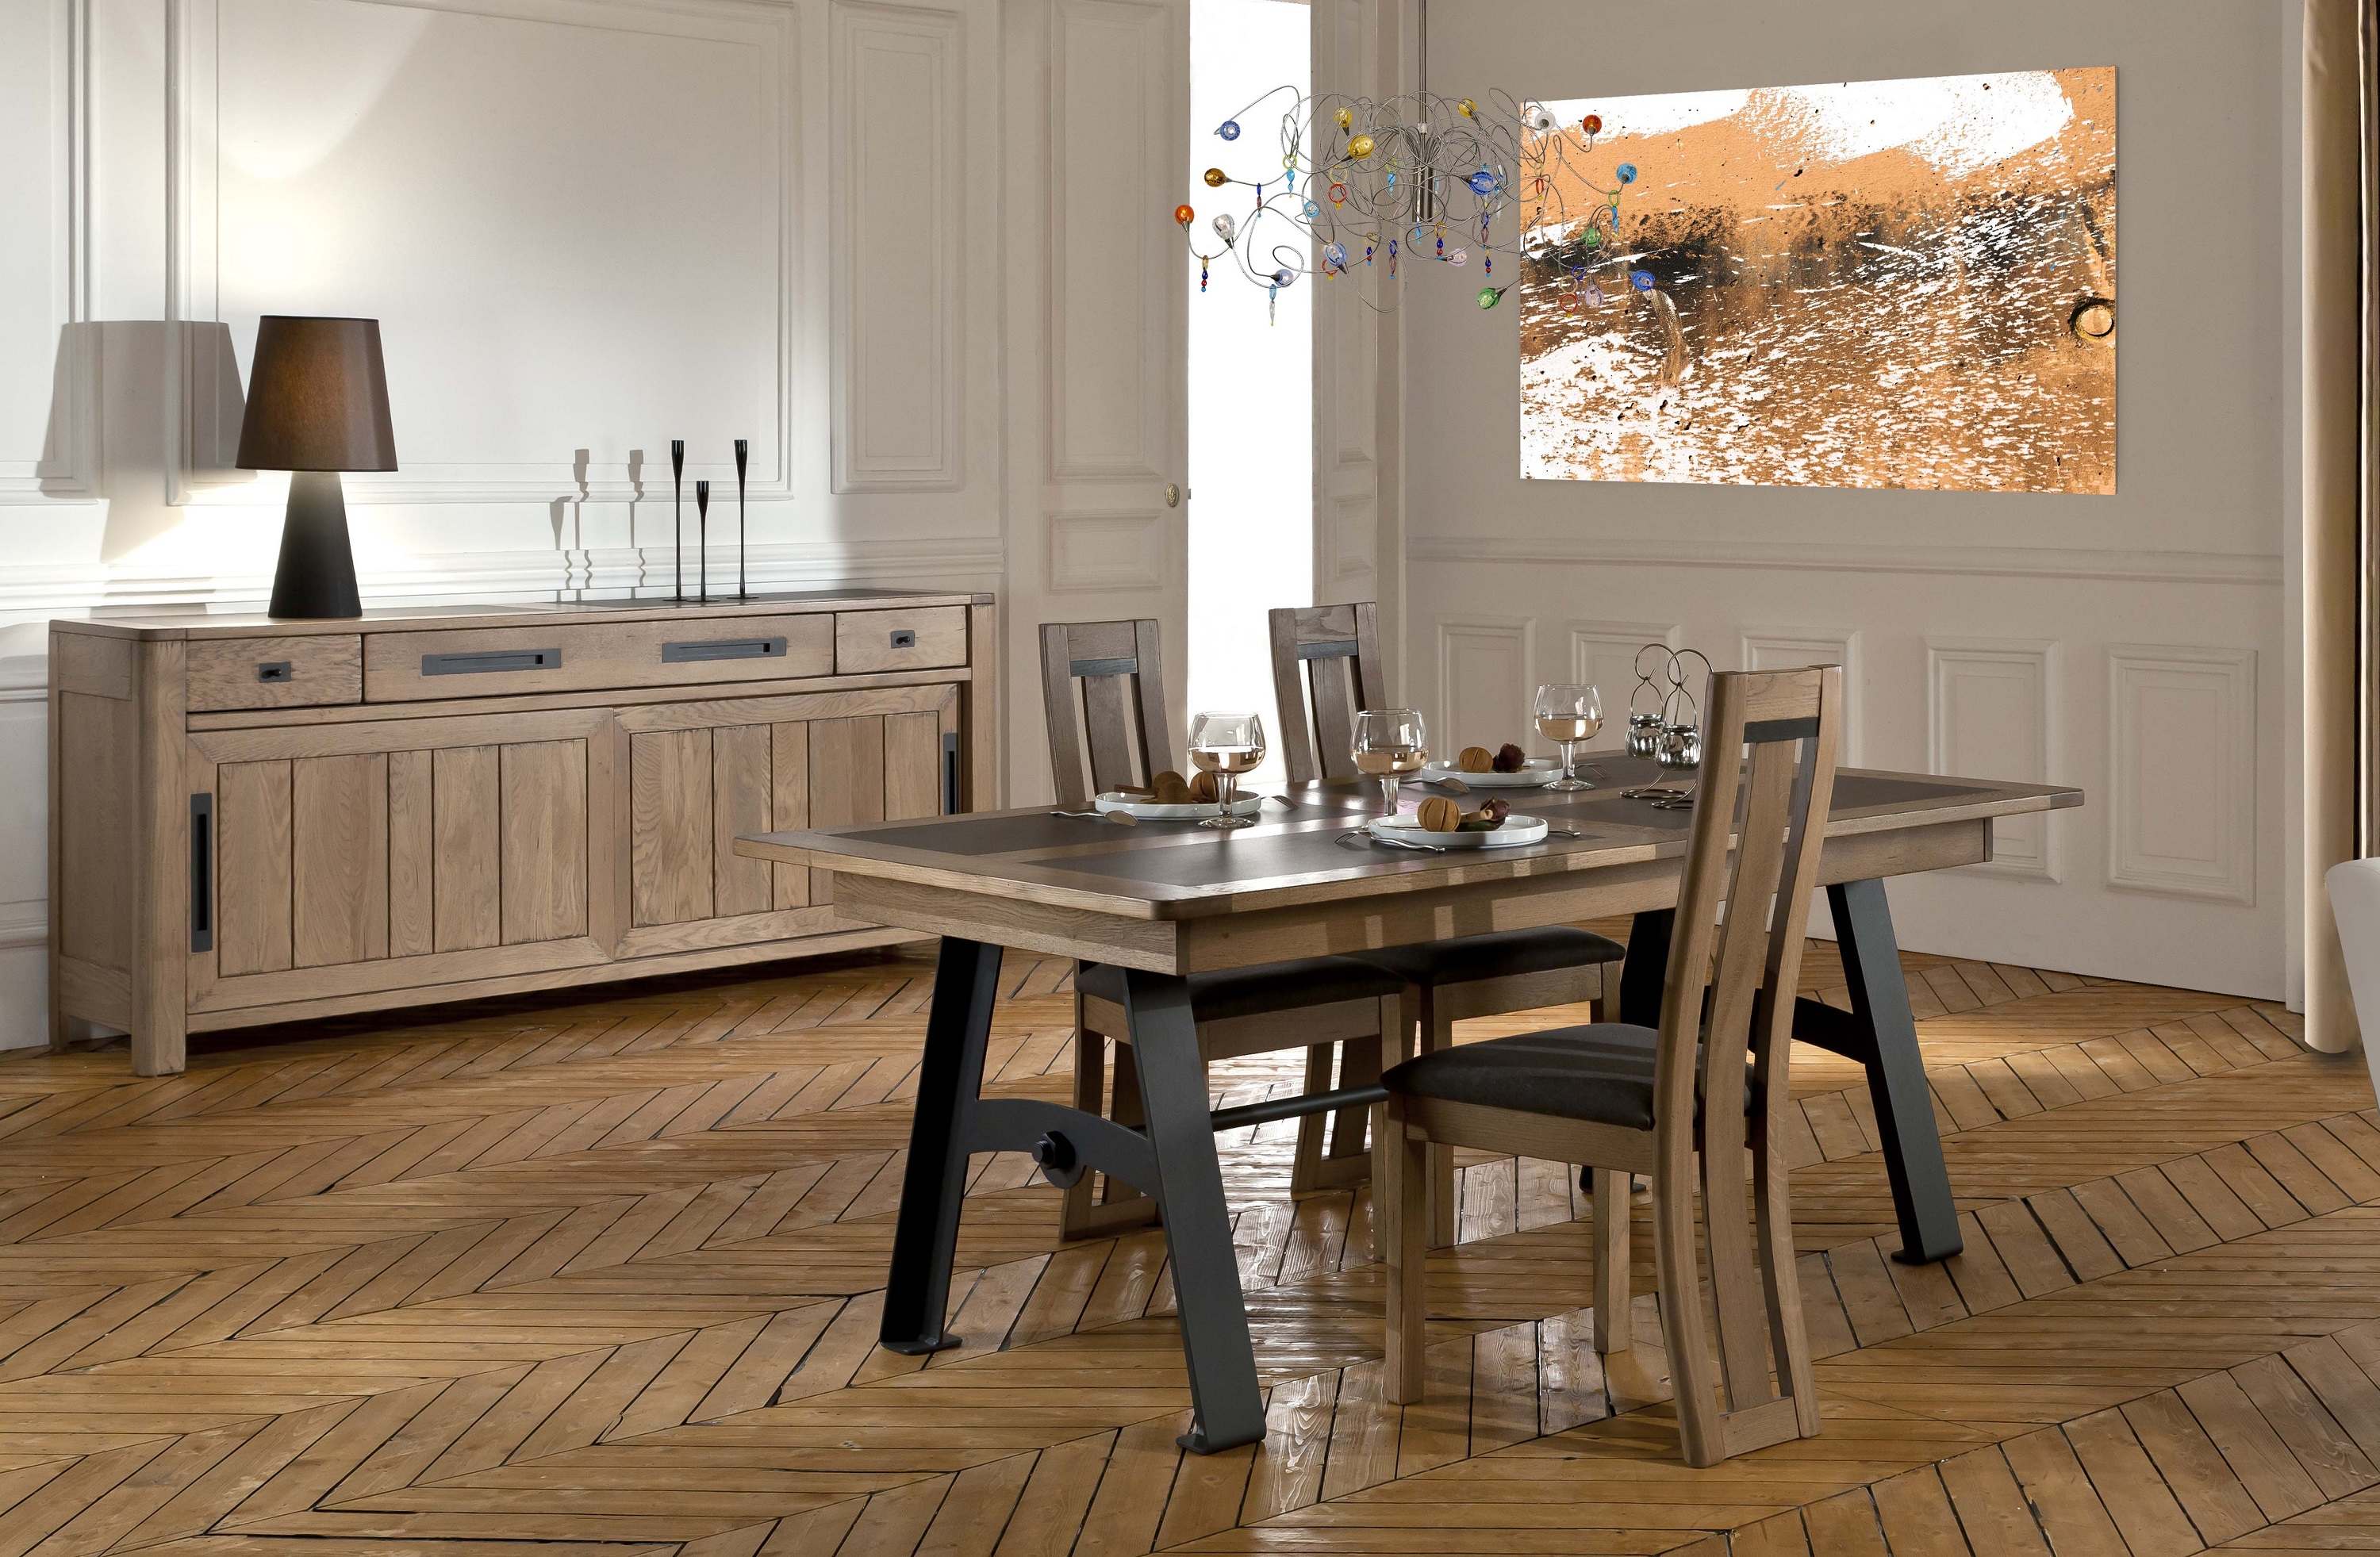 Deauvil for Meuble salle a manger fabrication francaise